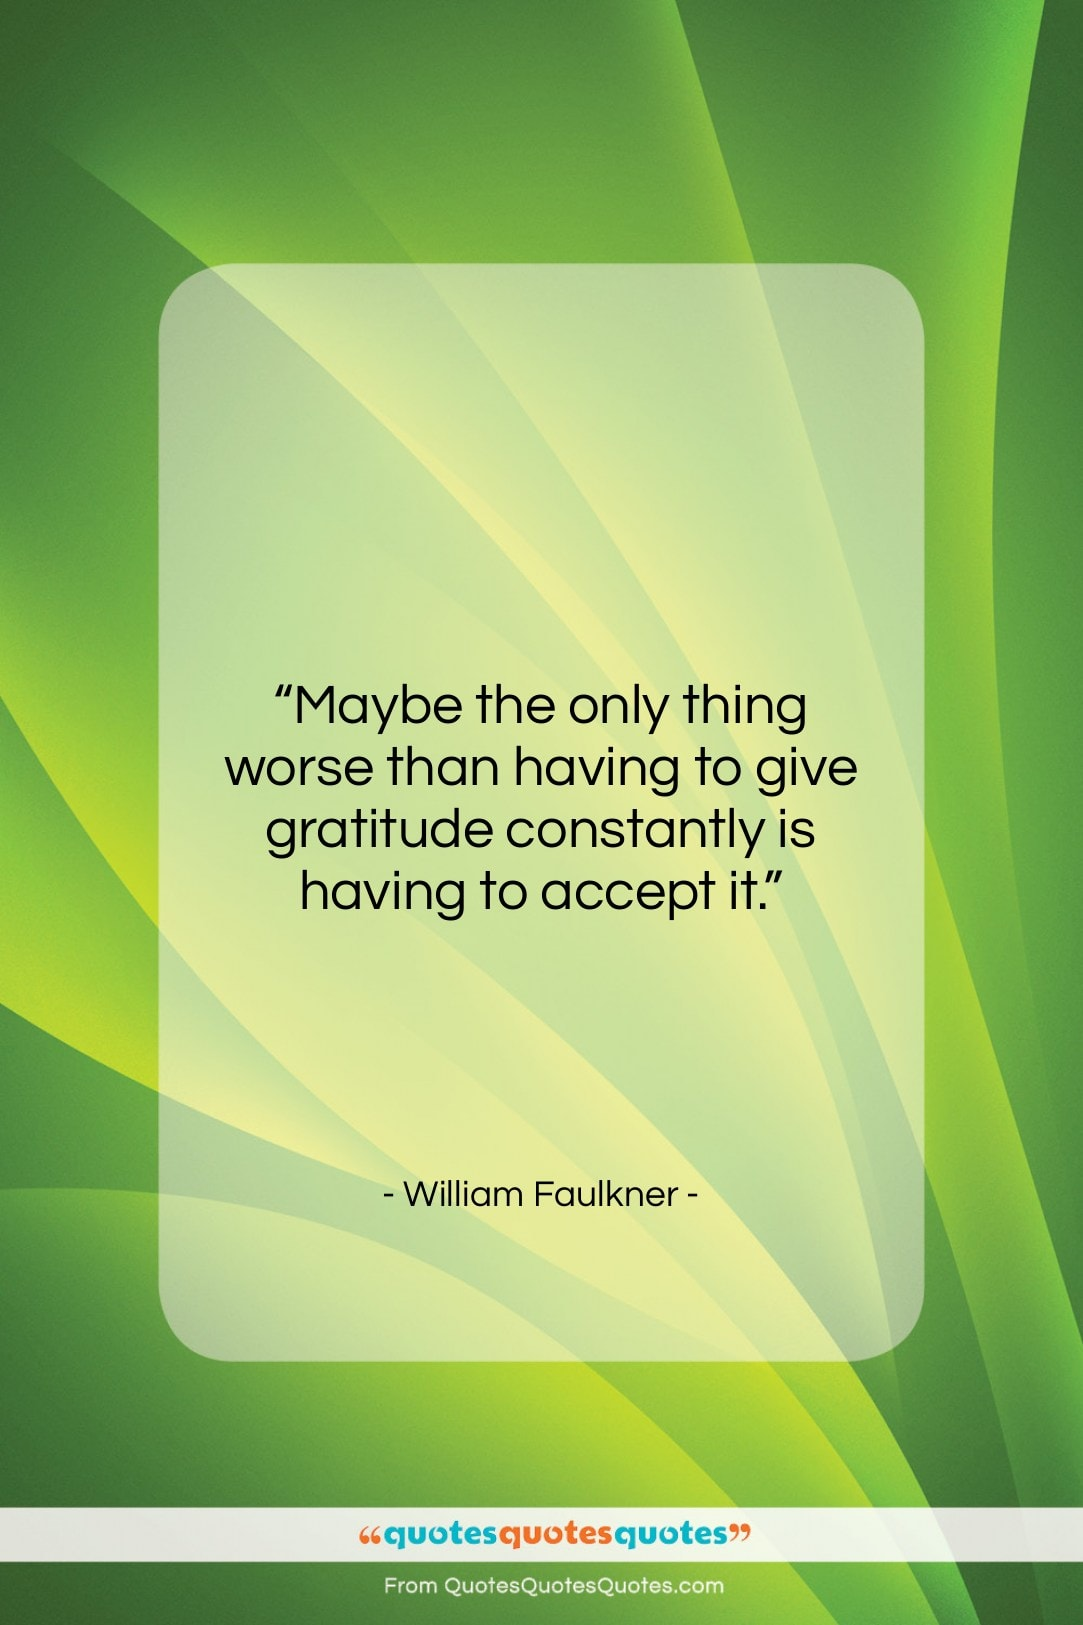 """William Faulkner quote: """"Maybe the only thing worse than having…""""- at QuotesQuotesQuotes.com"""